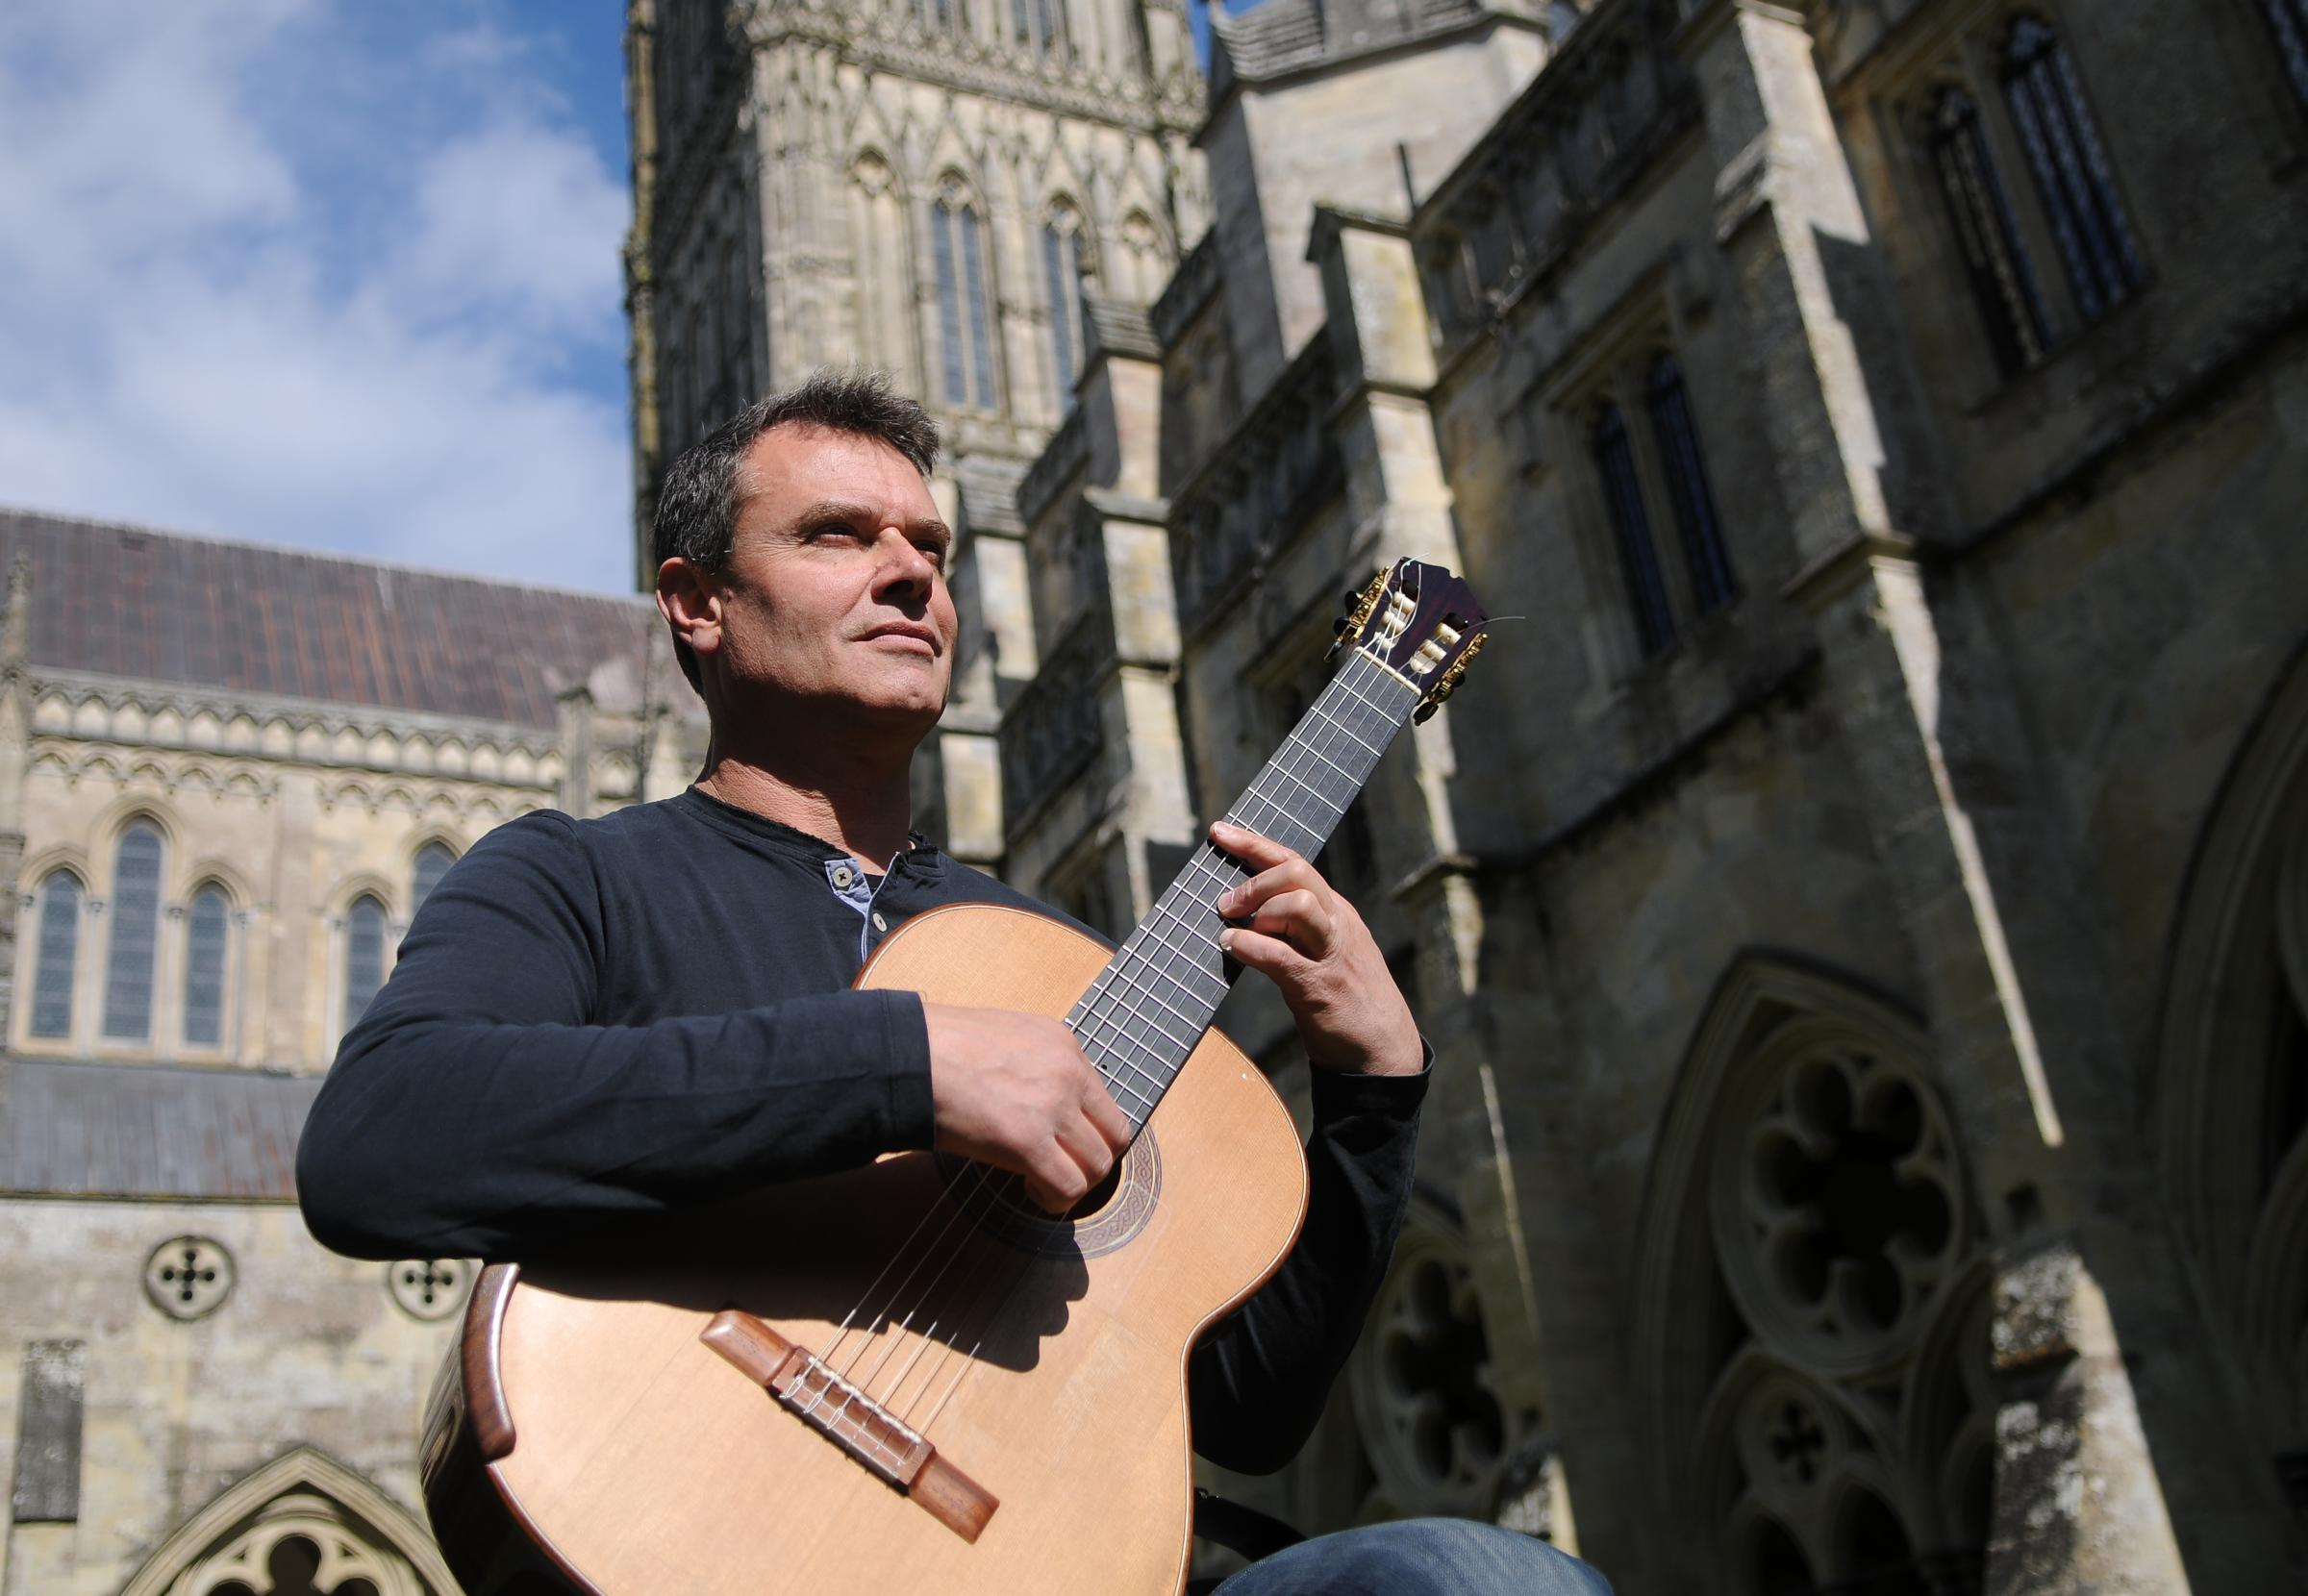 Classical guitarist Craig Ogden at Salisbury Cathedral DC9050P6 Picture by Tom Gregory